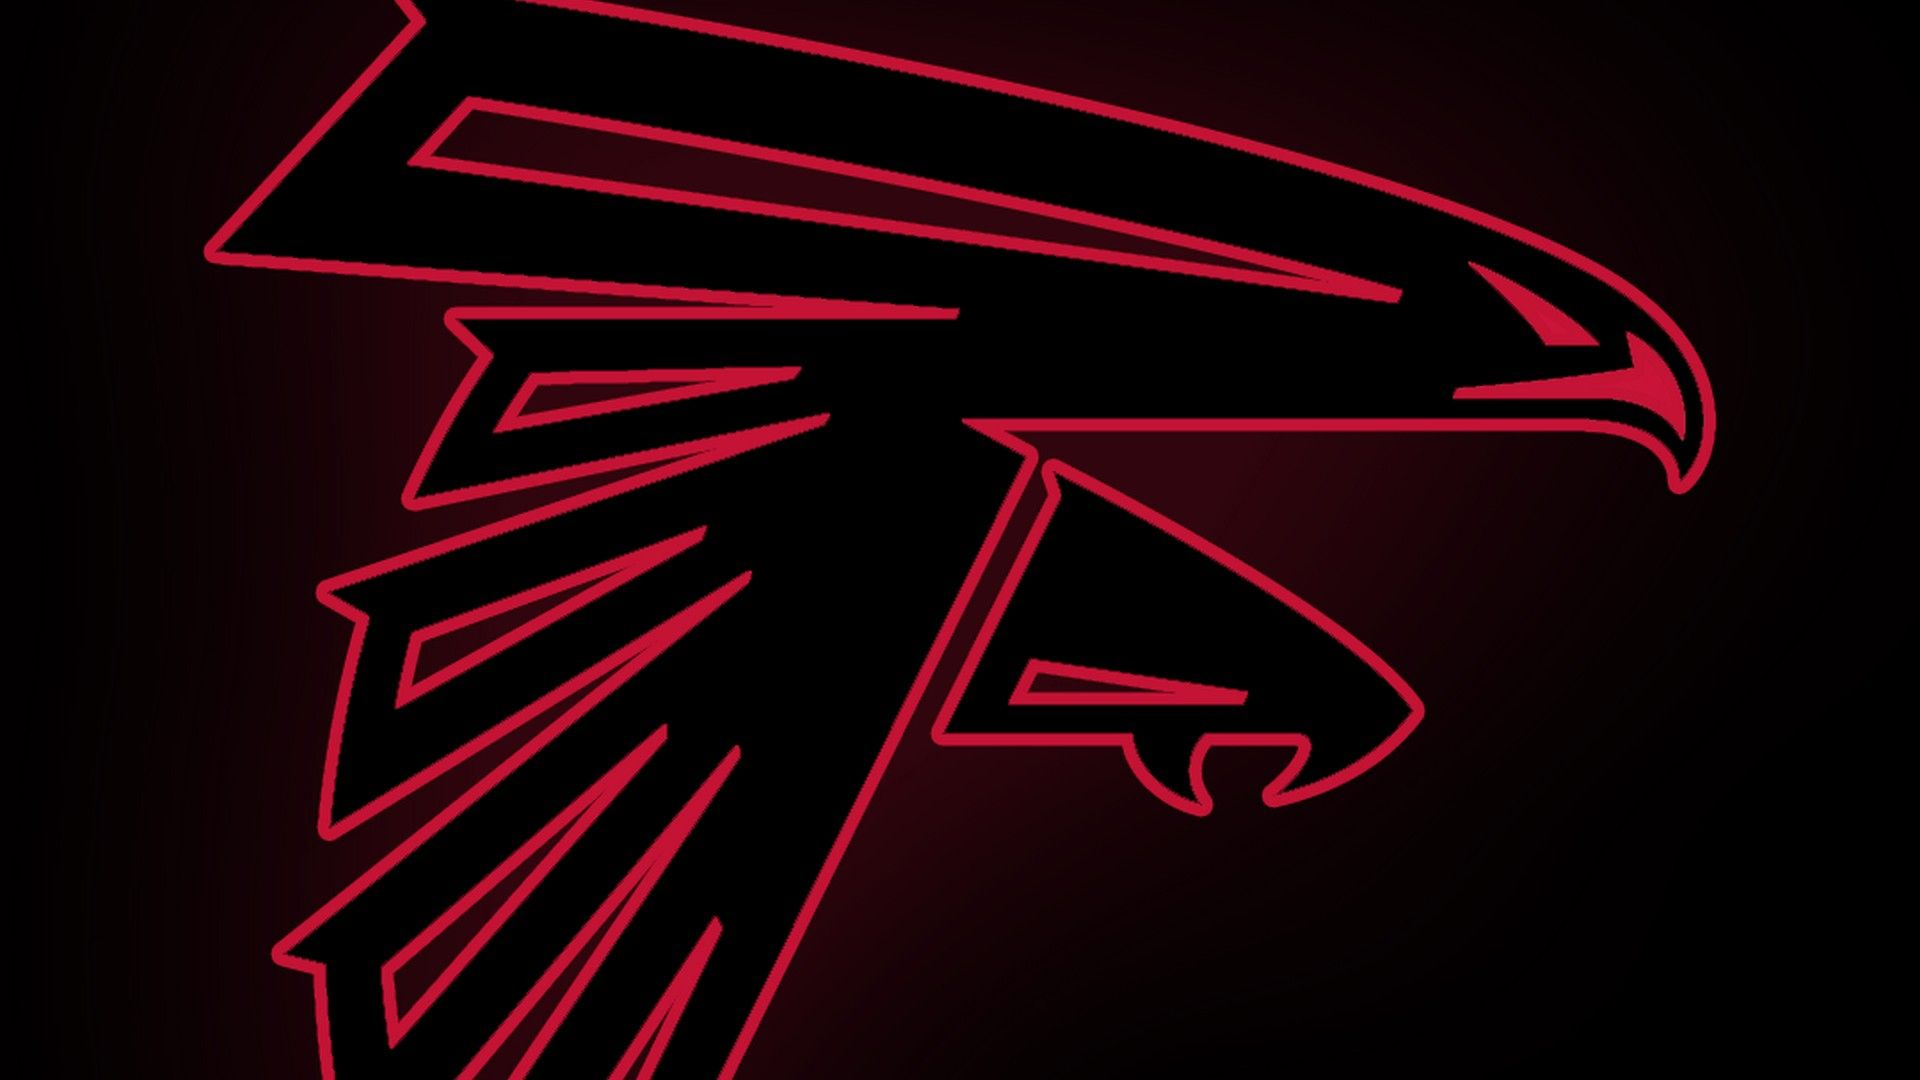 Falcons Wallpaper: Atlanta Falcons Wallpaper For Mac Backgrounds